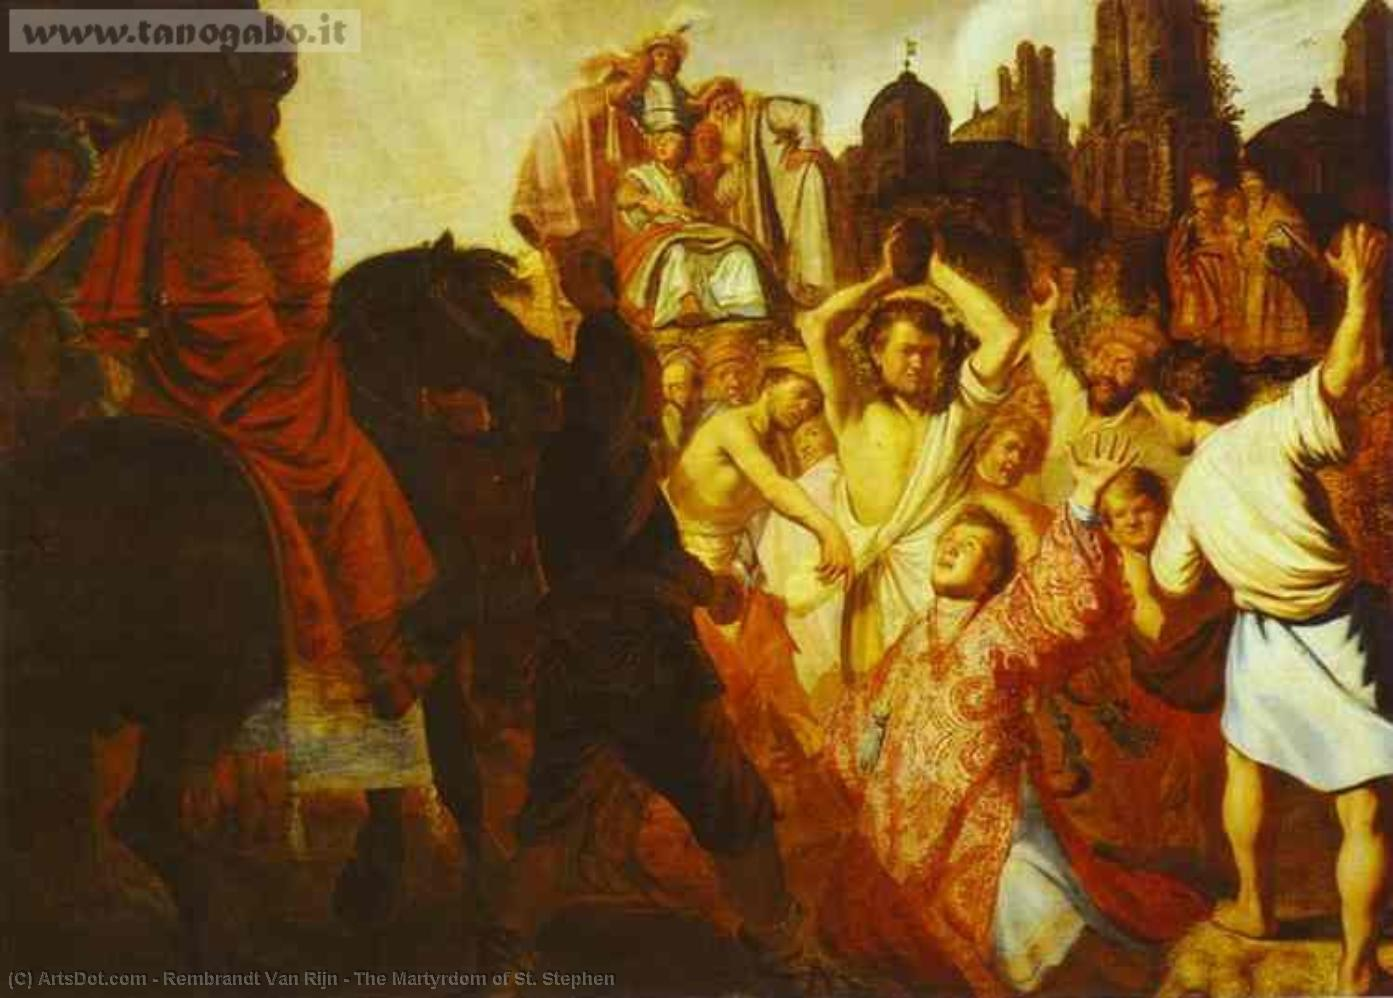 Wikioo.org - The Encyclopedia of Fine Arts - Painting, Artwork by Rembrandt Van Rijn - The Martyrdom of St. Stephen